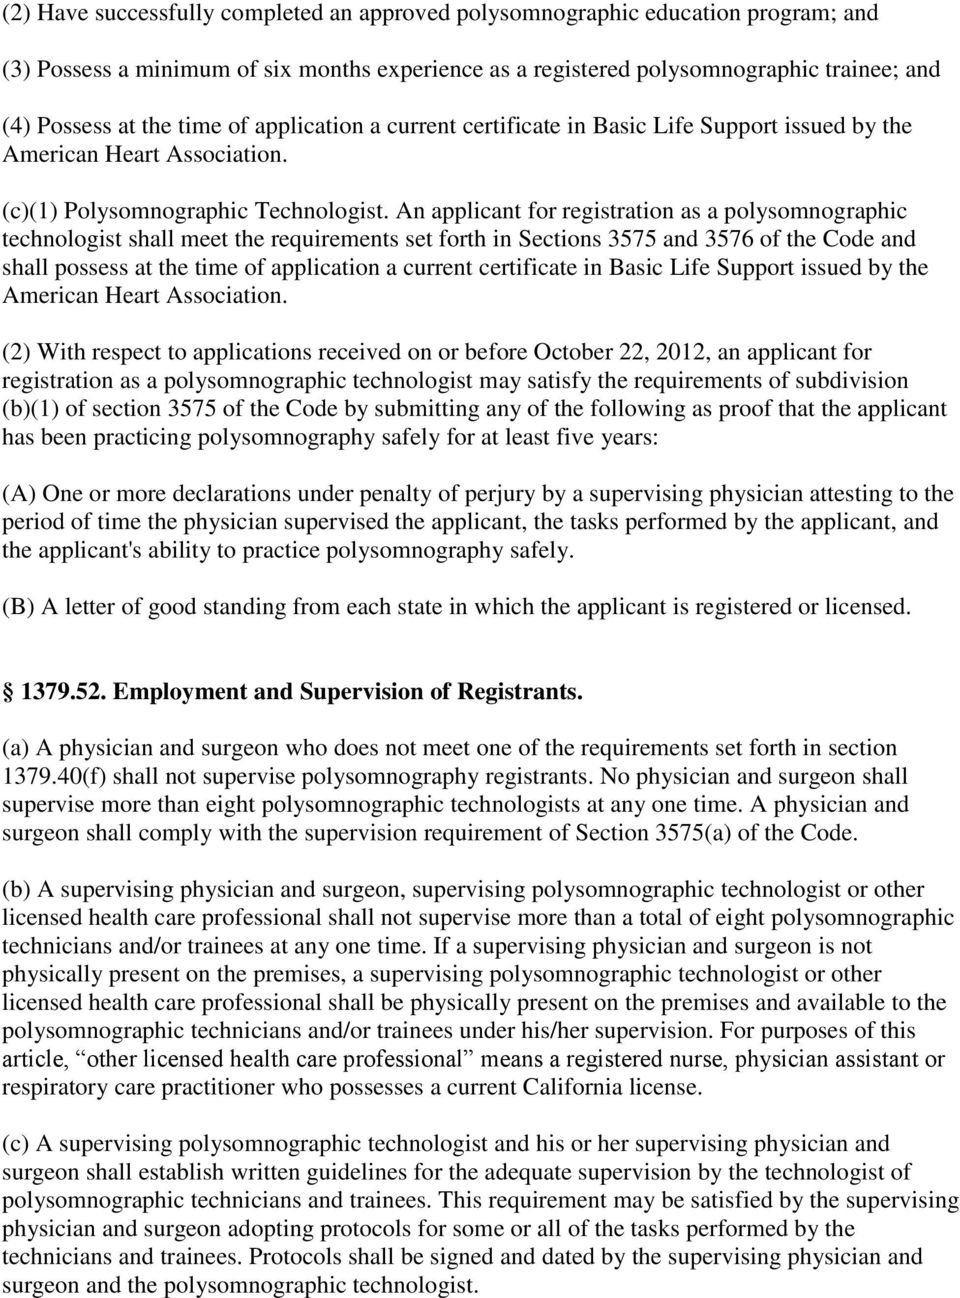 An applicant for registration as a polysomnographic technologist shall meet the requirements set forth in Sections 3575 and 3576 of the Code and shall possess at the time of application a current